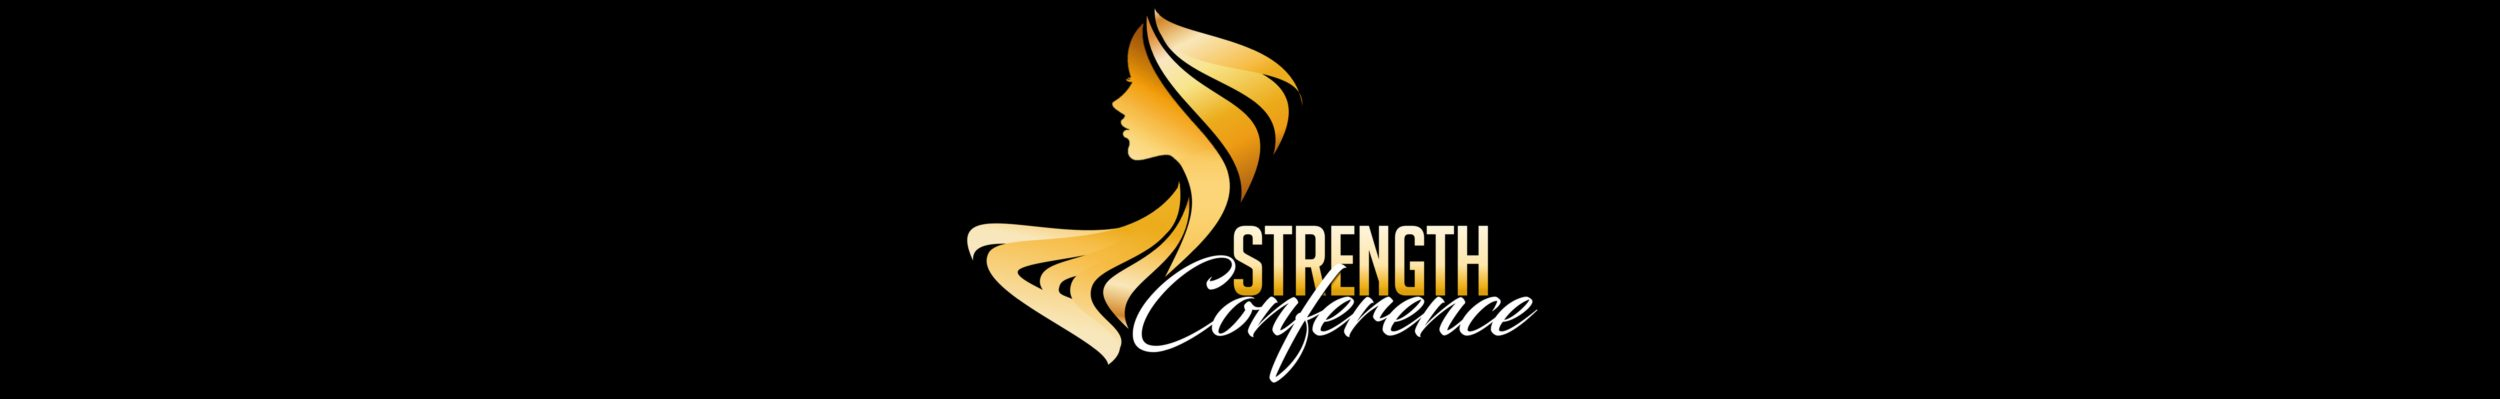 Strength Conference 2018